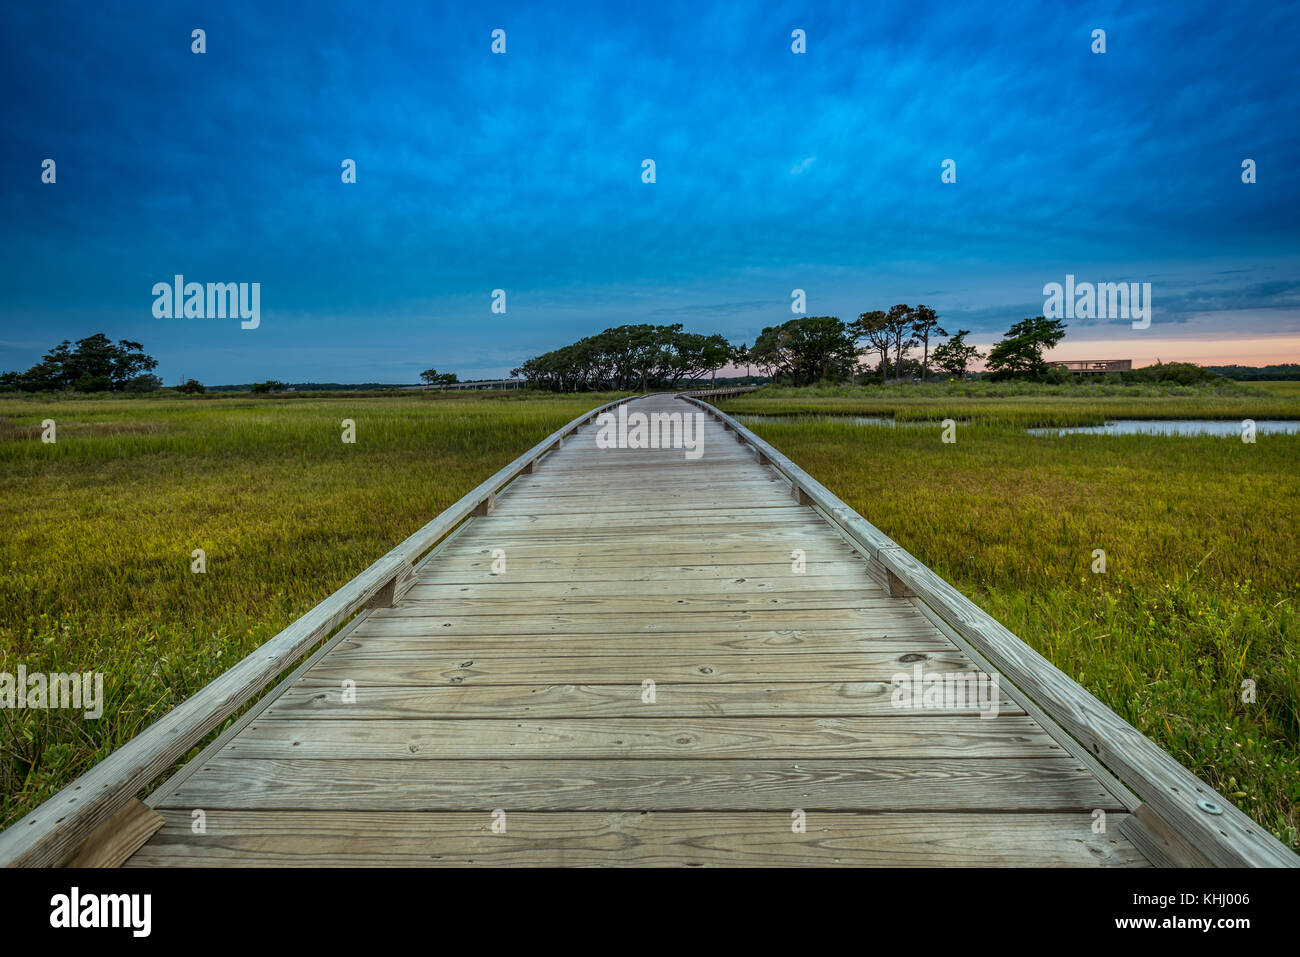 Low Angle of Wooden Boardwalk Through Marsh in Morning - Stock Image